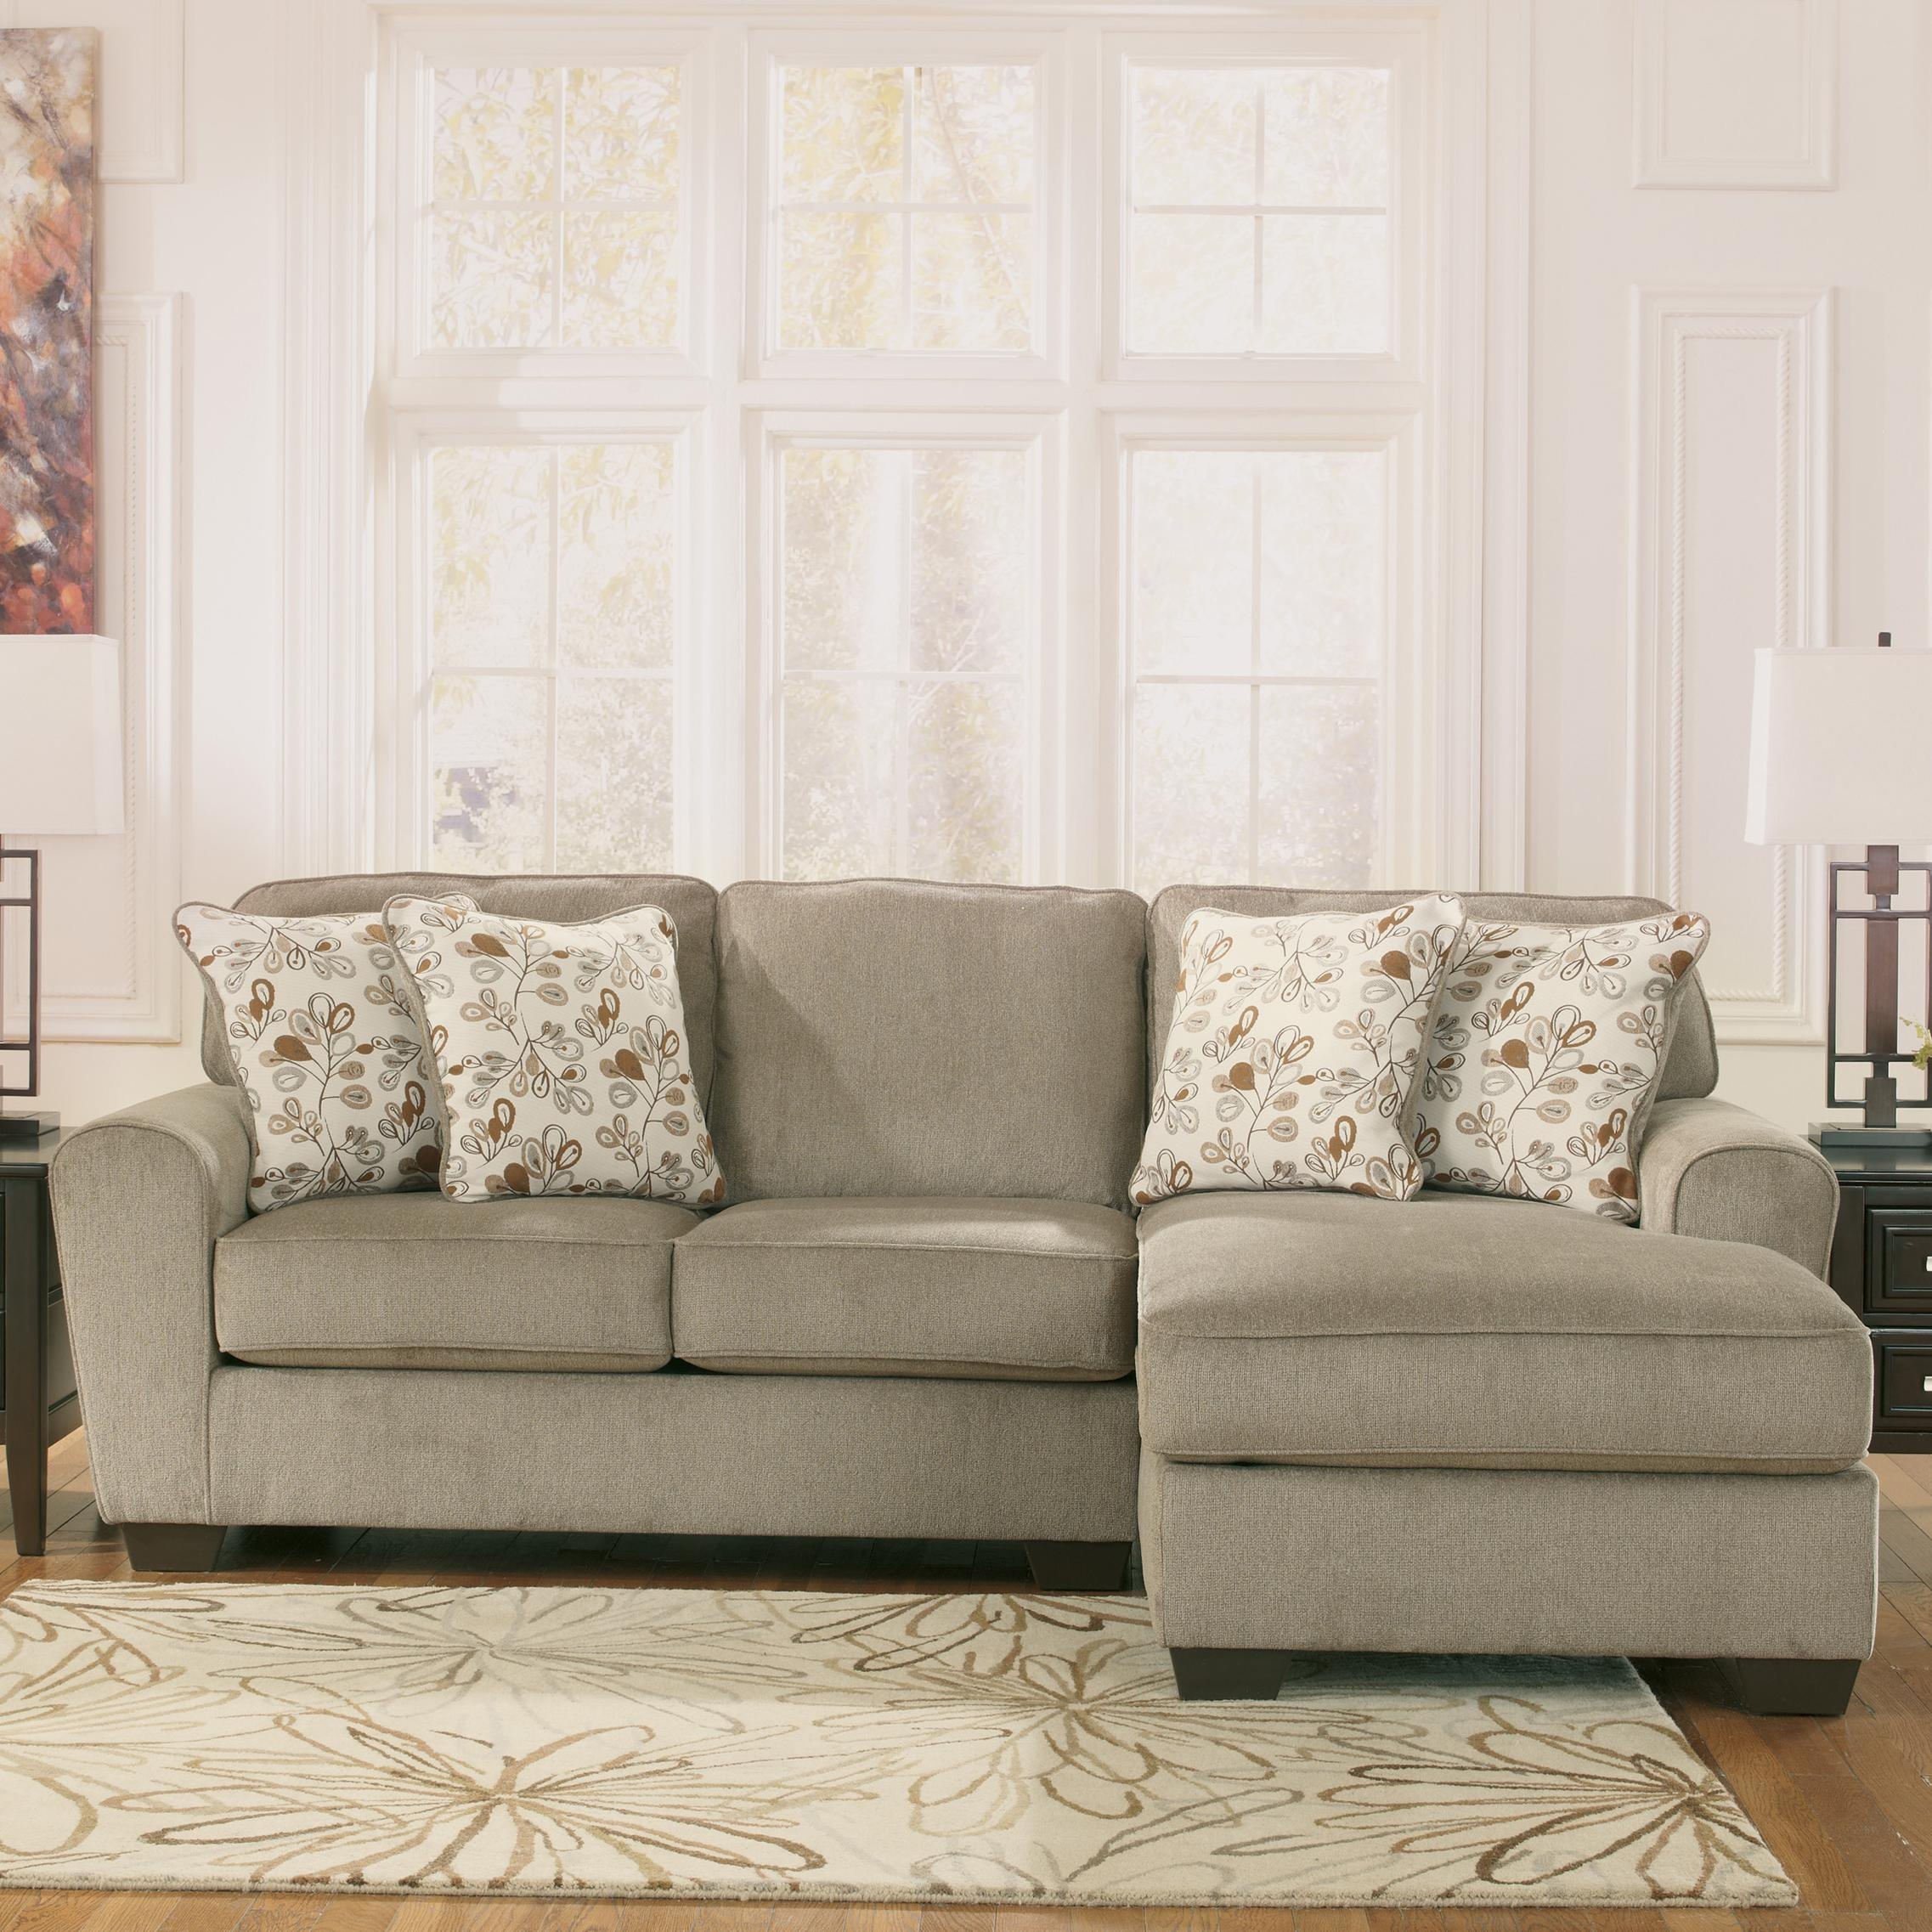 Ashley Furniture Patola Park - Patina 2-Piece Sectional with Right Chaise - Item Number: 1290055+17